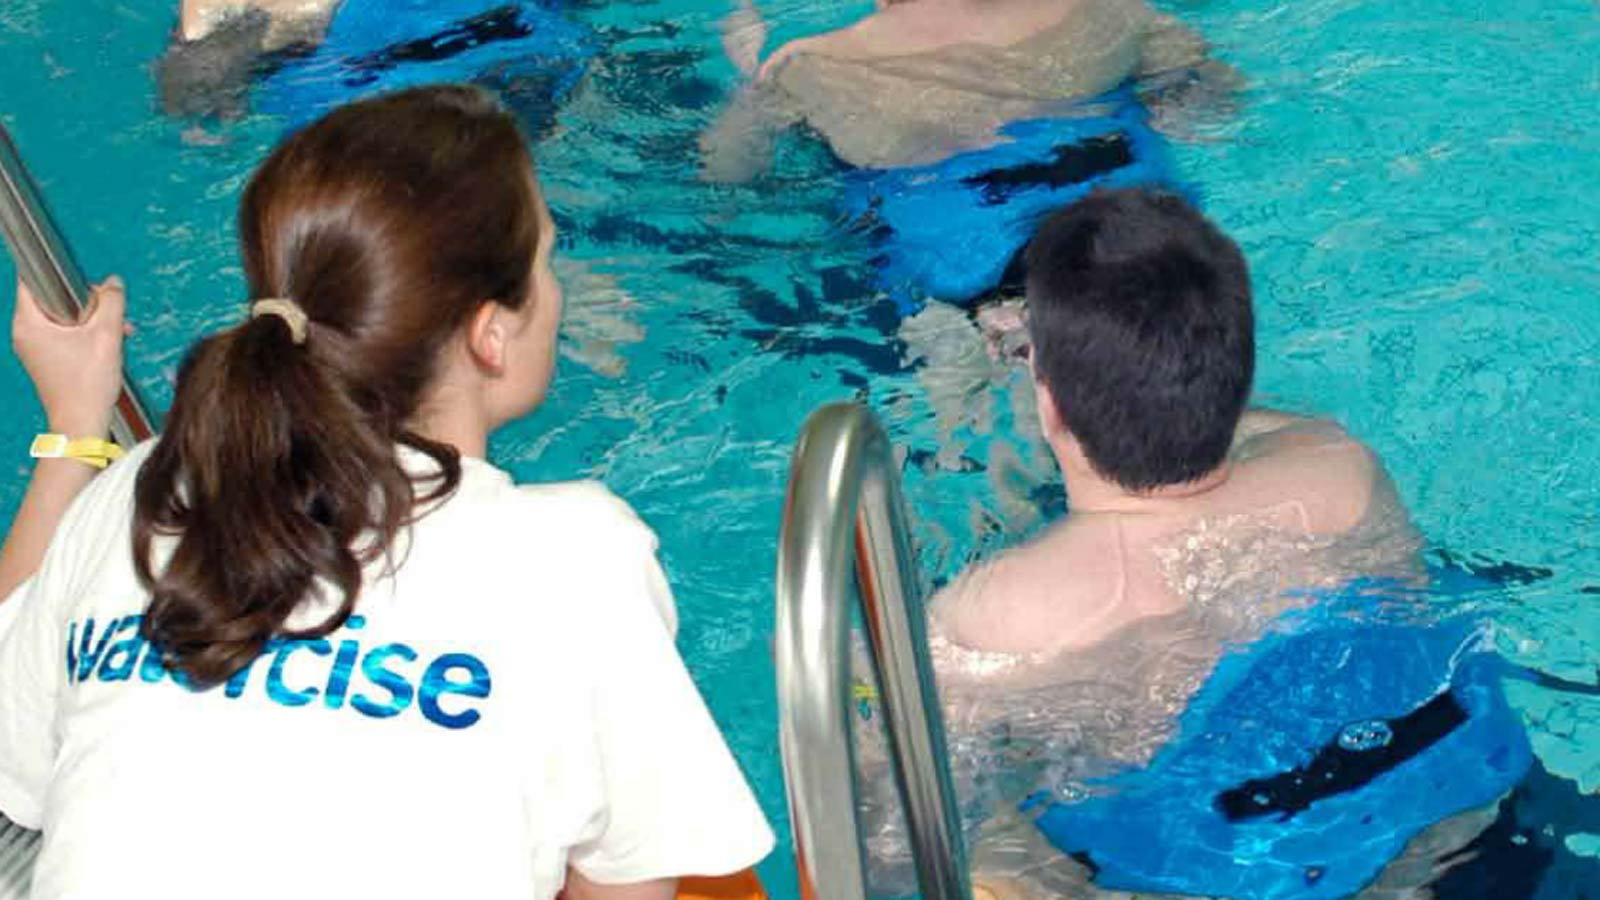 Patienten bei WATERCISE-Übungen